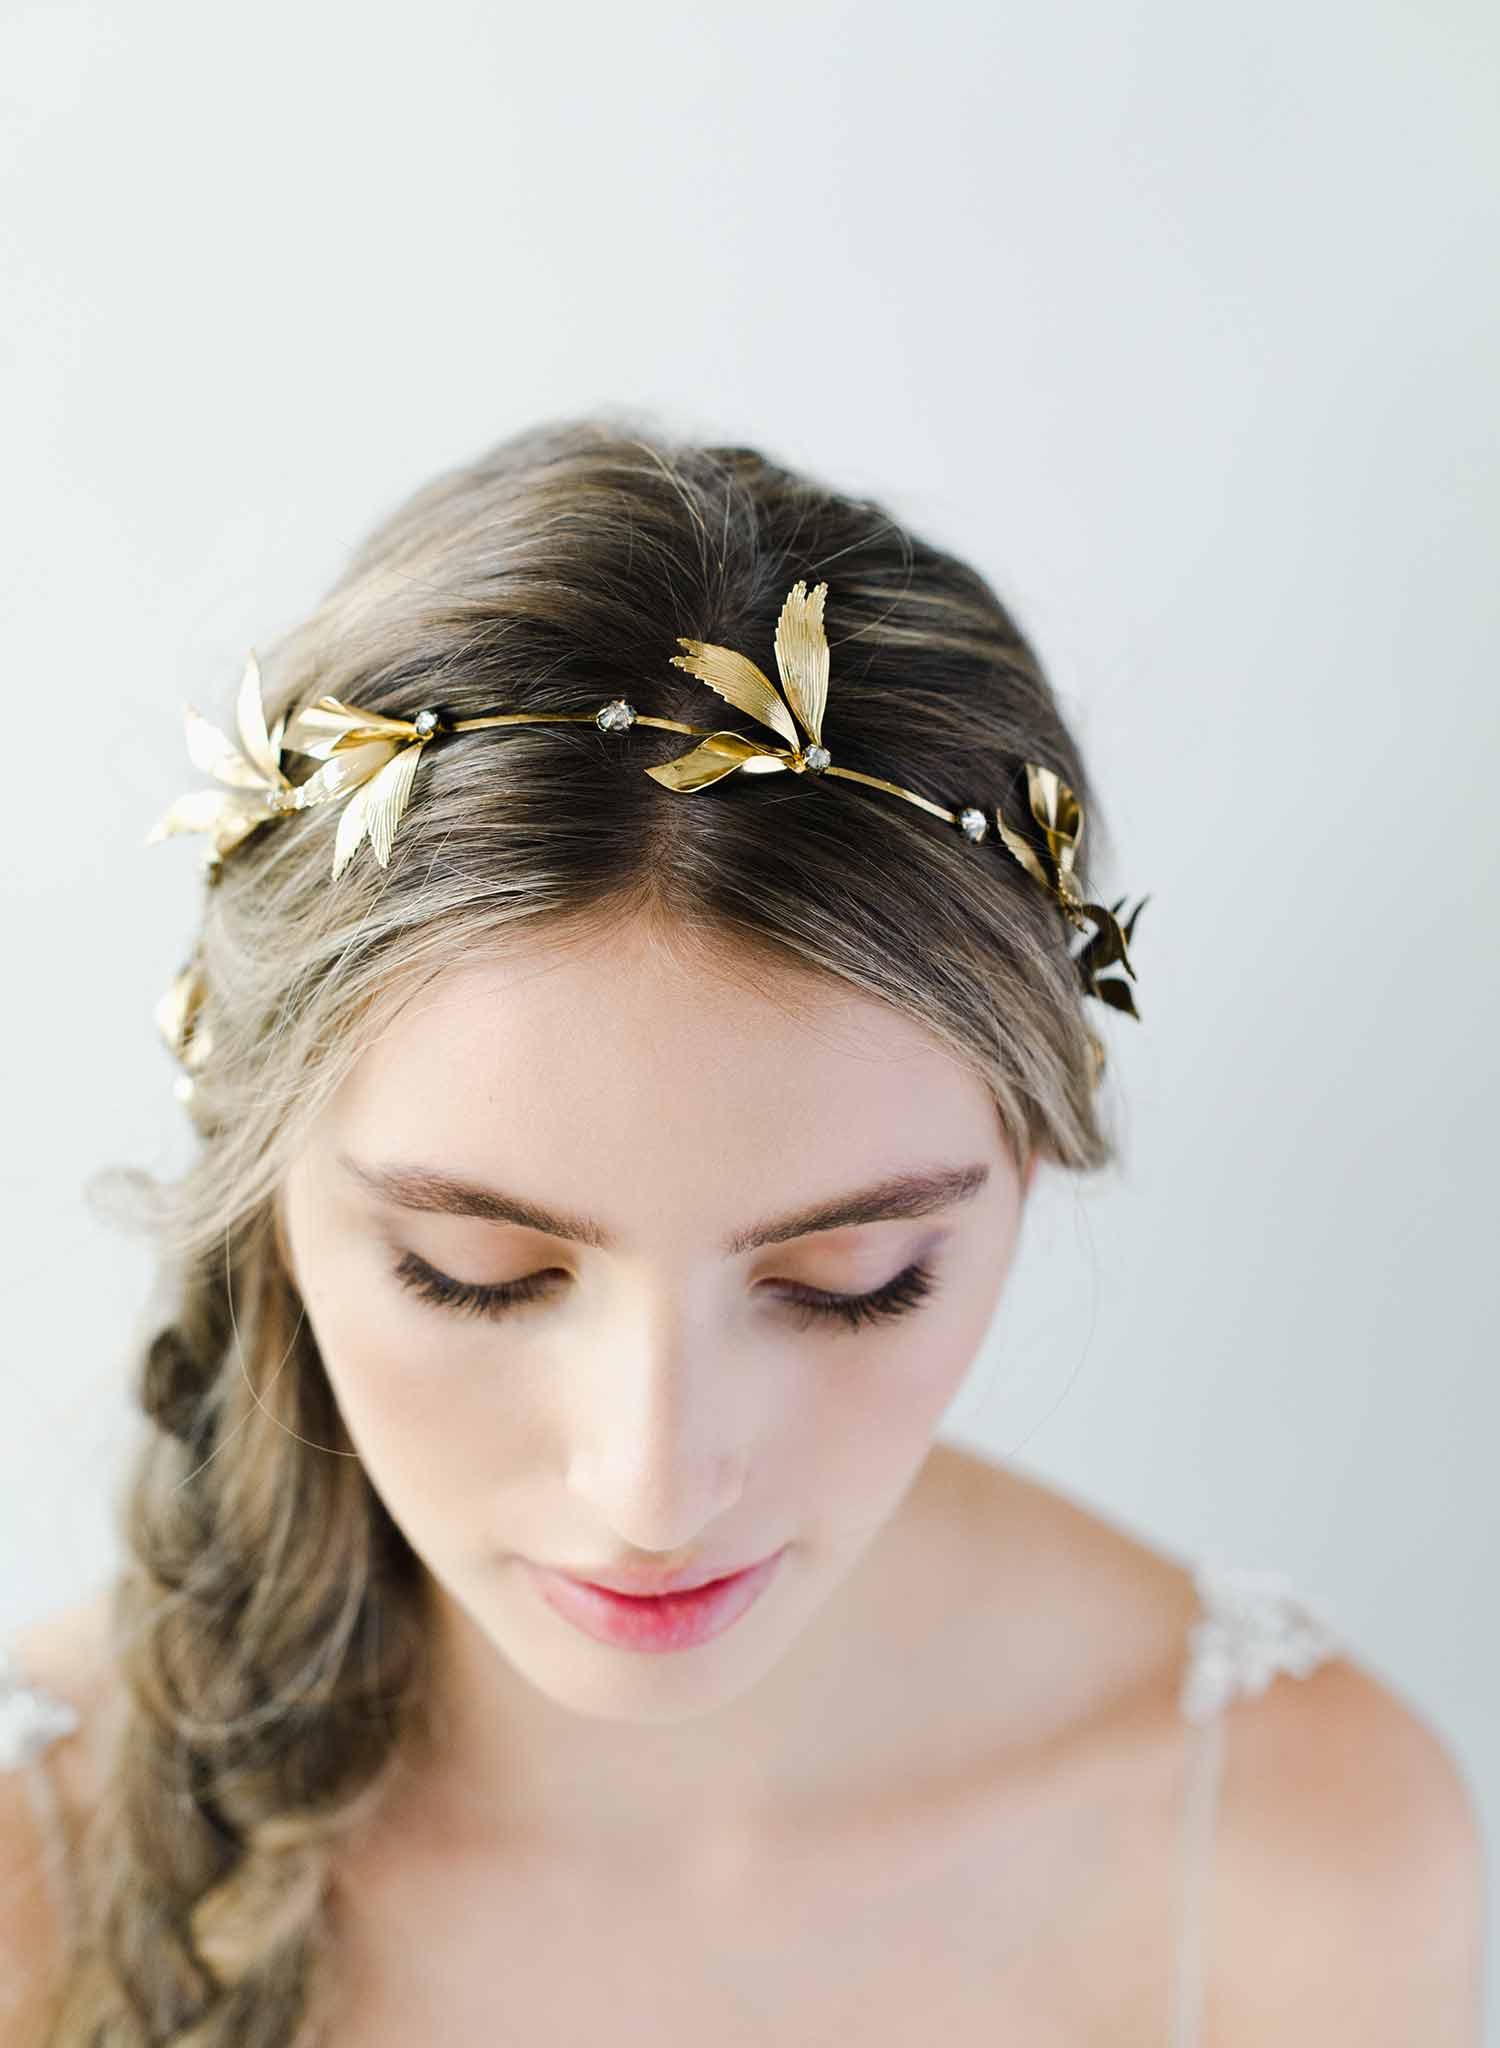 Gilded grecian wings headpiece - Style #2043